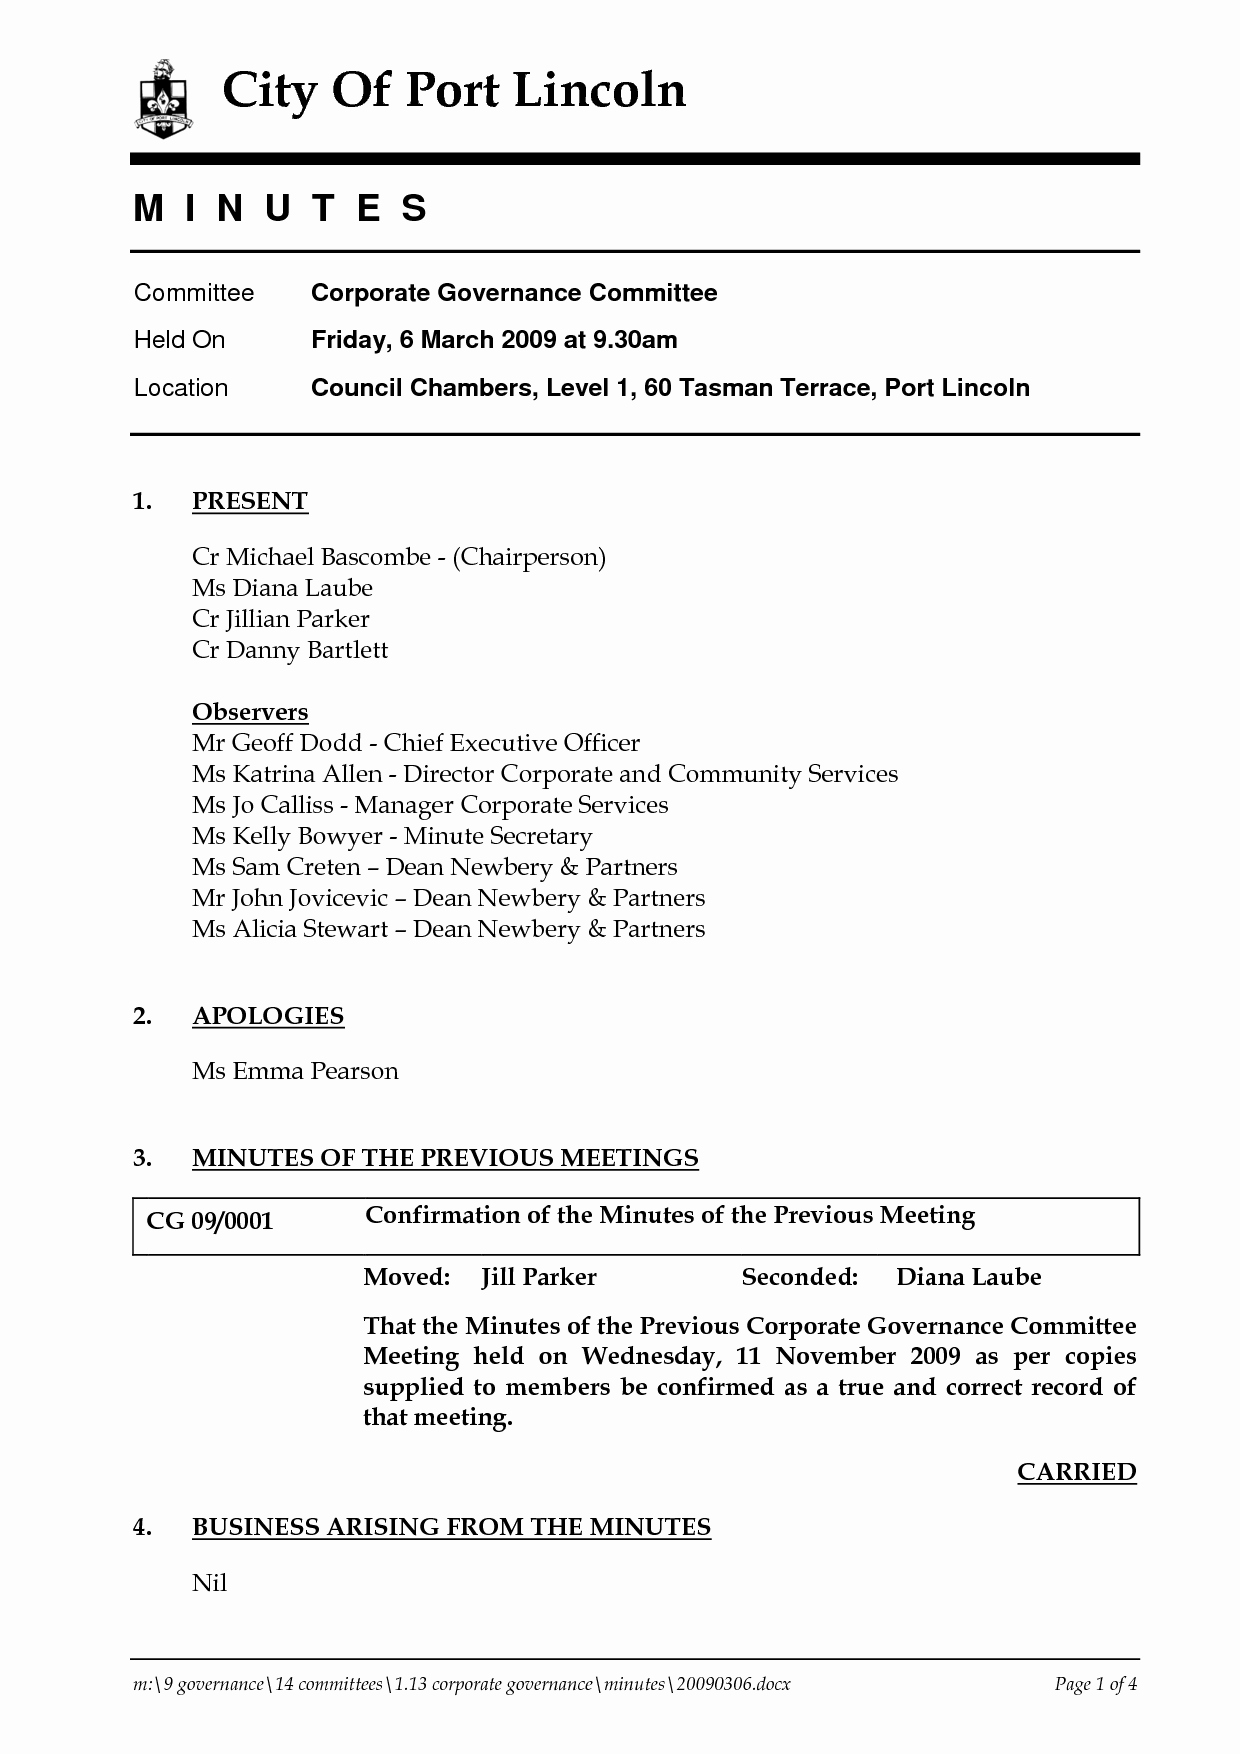 Word Template for Meeting Minutes Luxury Corporate Minutes Template